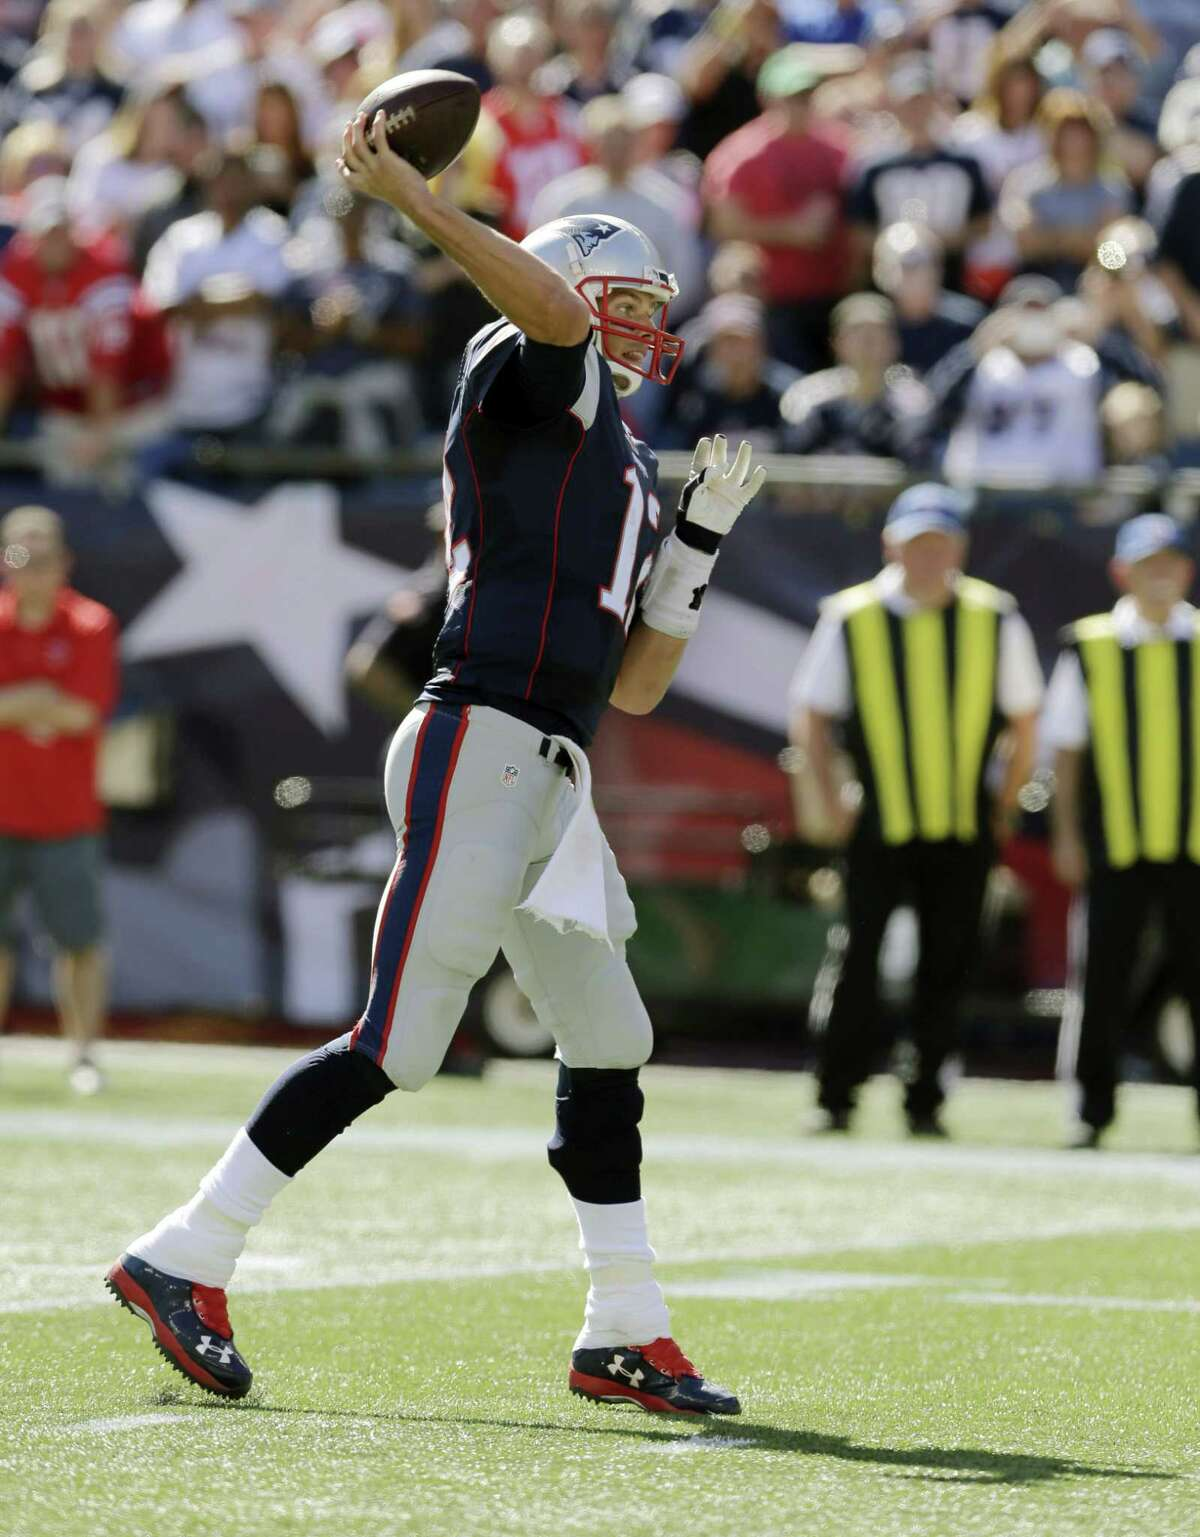 New England Patriots quarterback Tom Brady throws a touchdown pass to wide receiver Danny Amendola, the 400th of Brady's NFL career, in the first half of an NFL football game against the Jacksonville Jaguars, on Sept. 27, 2015 in Foxborough, Mass.